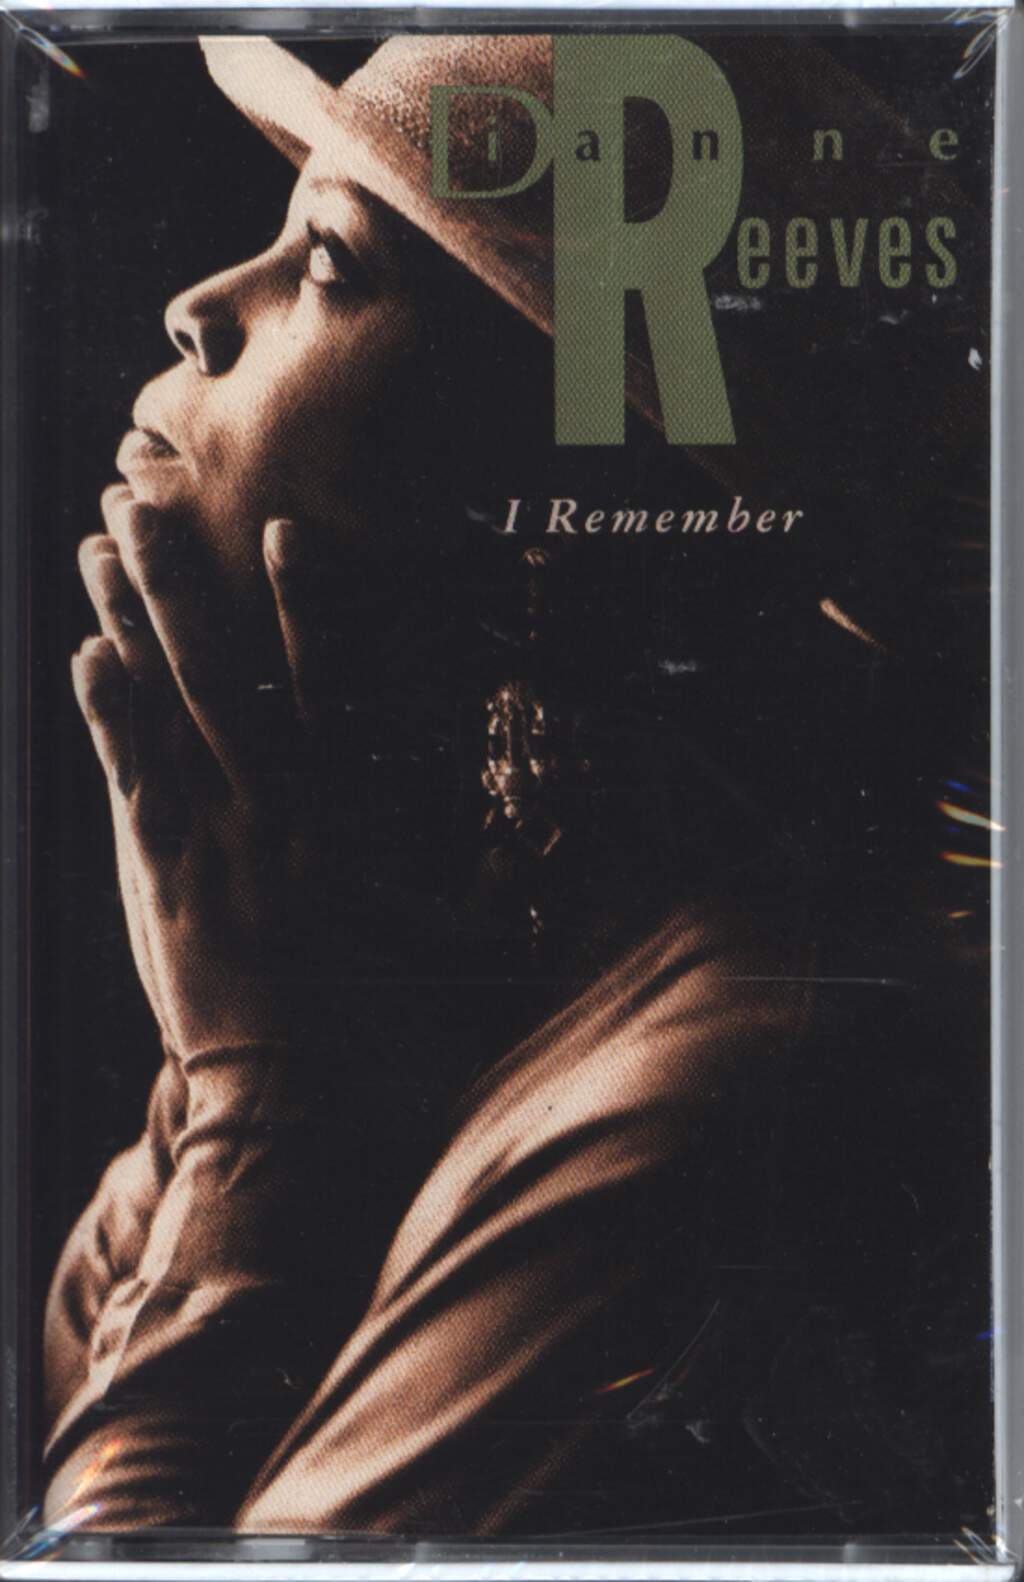 Dianne Reeves: I Remember, Compact Cassette